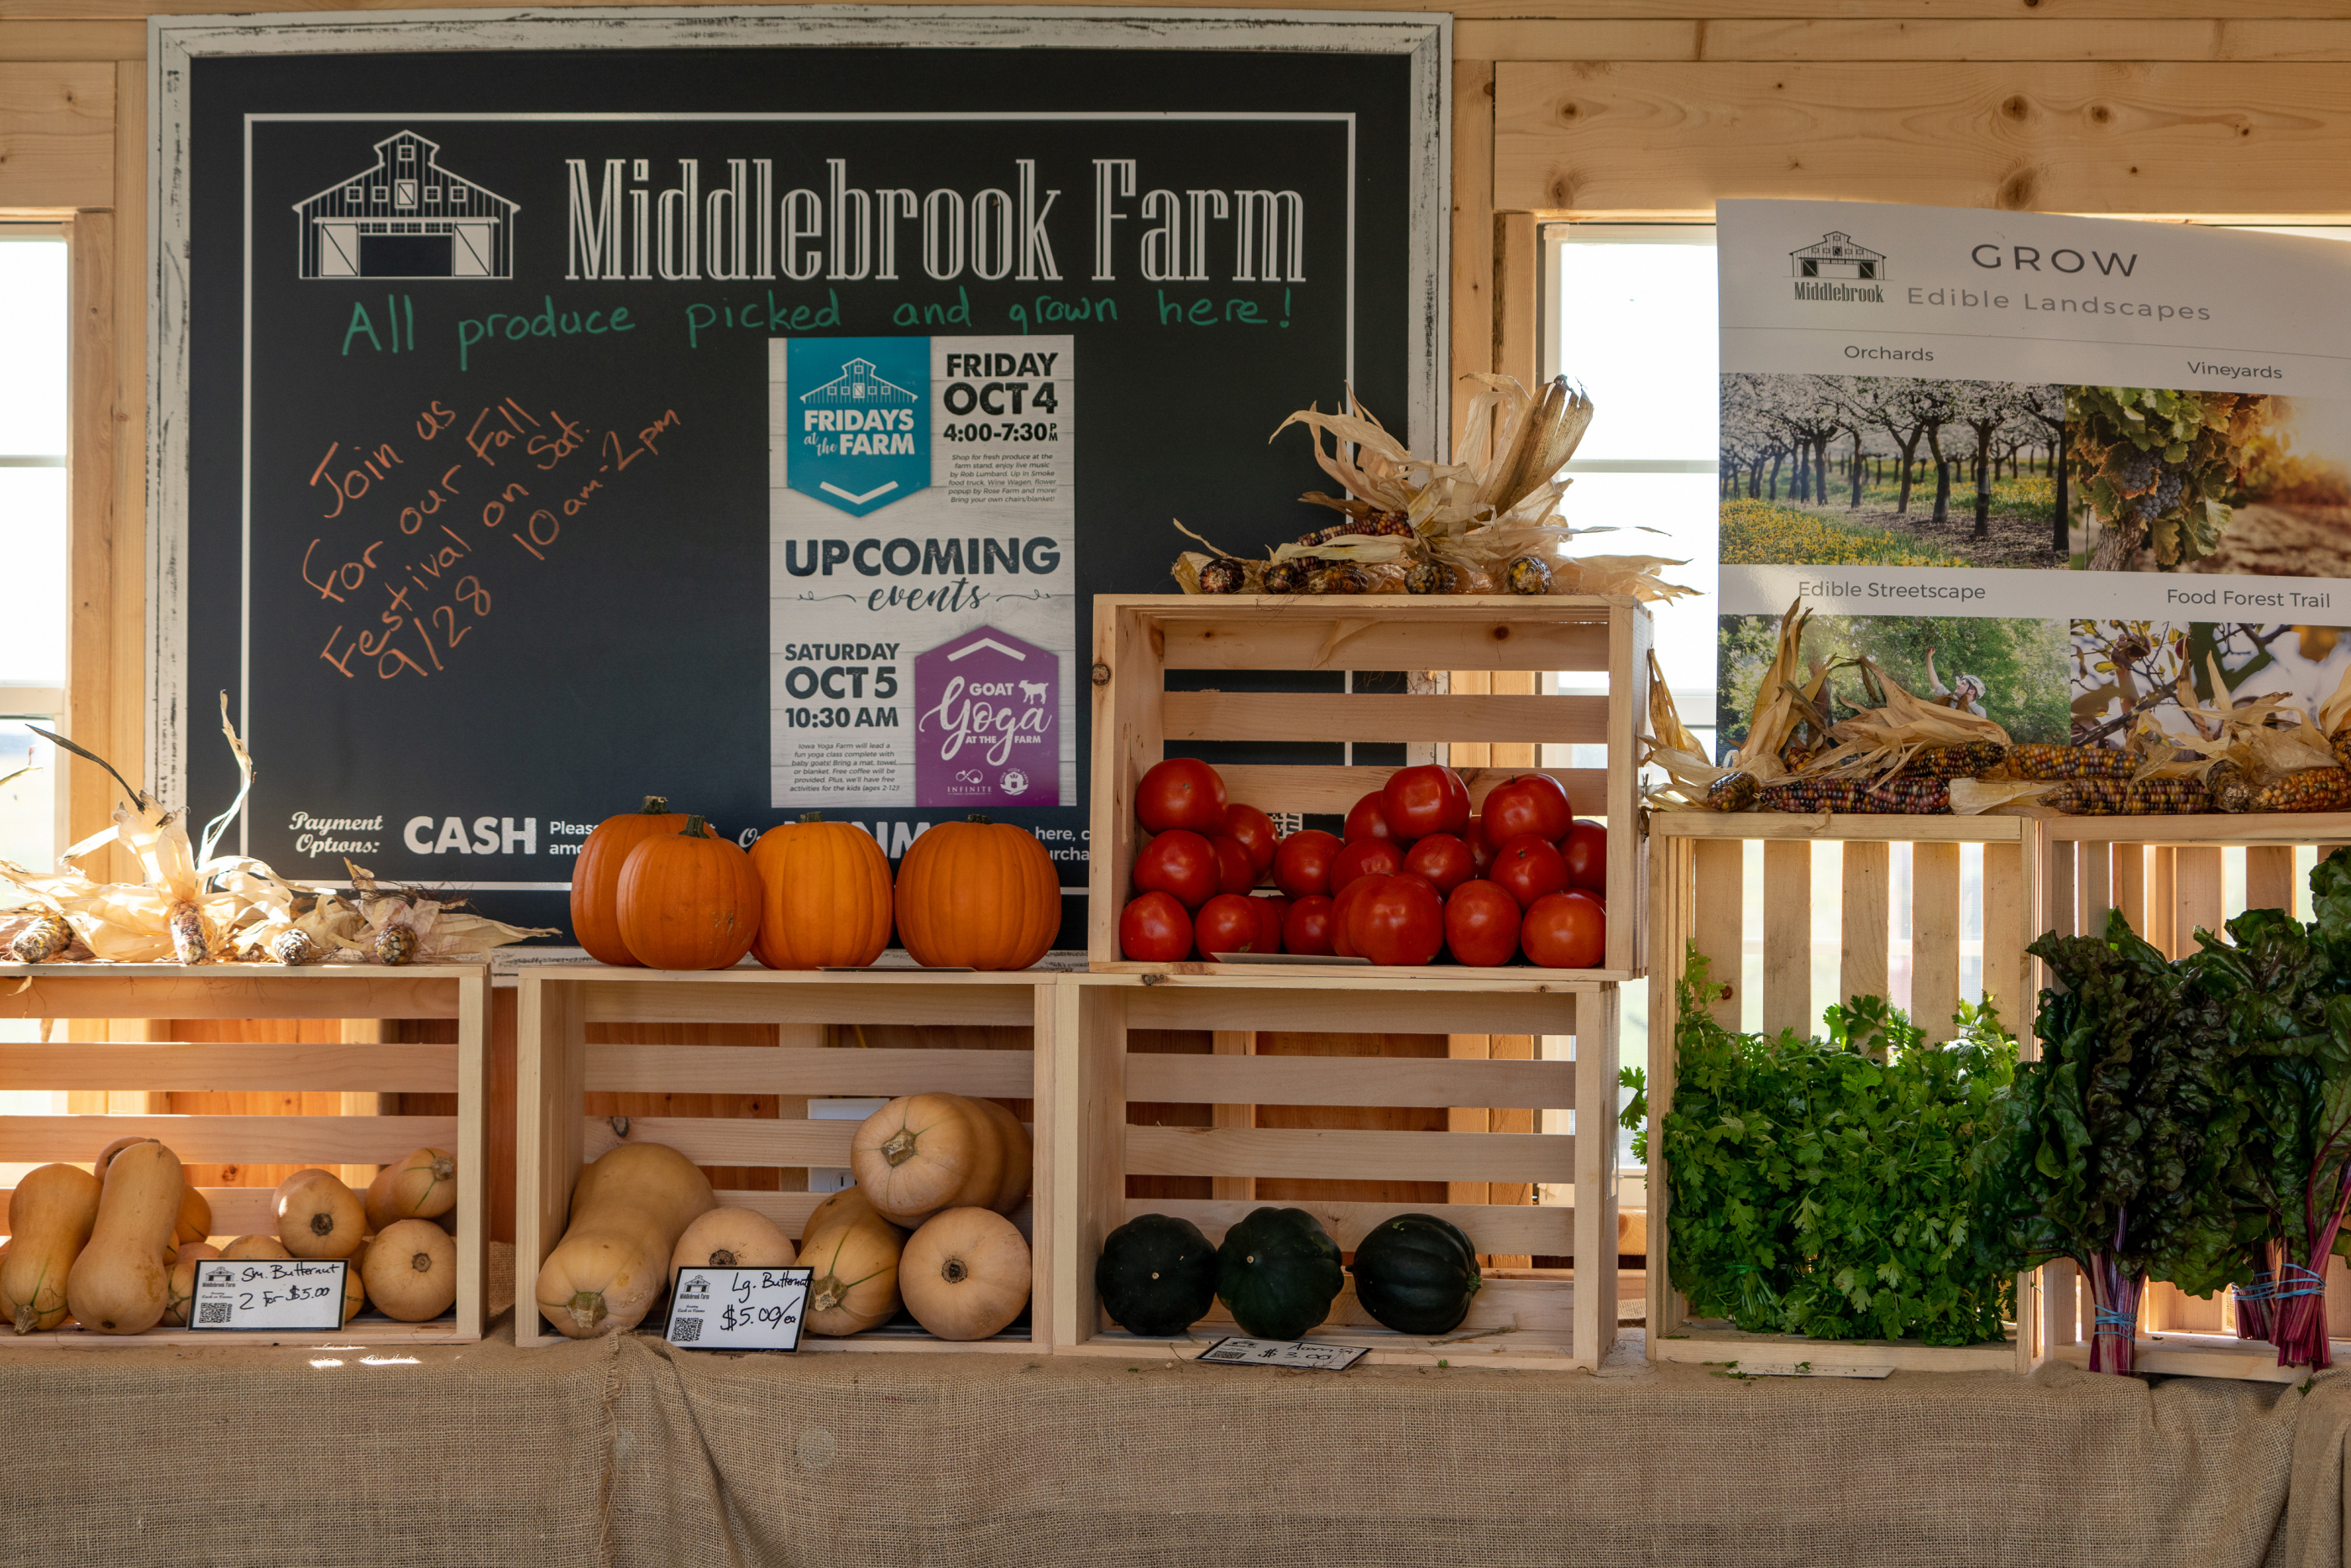 Middlebrook Farm Stand Produce